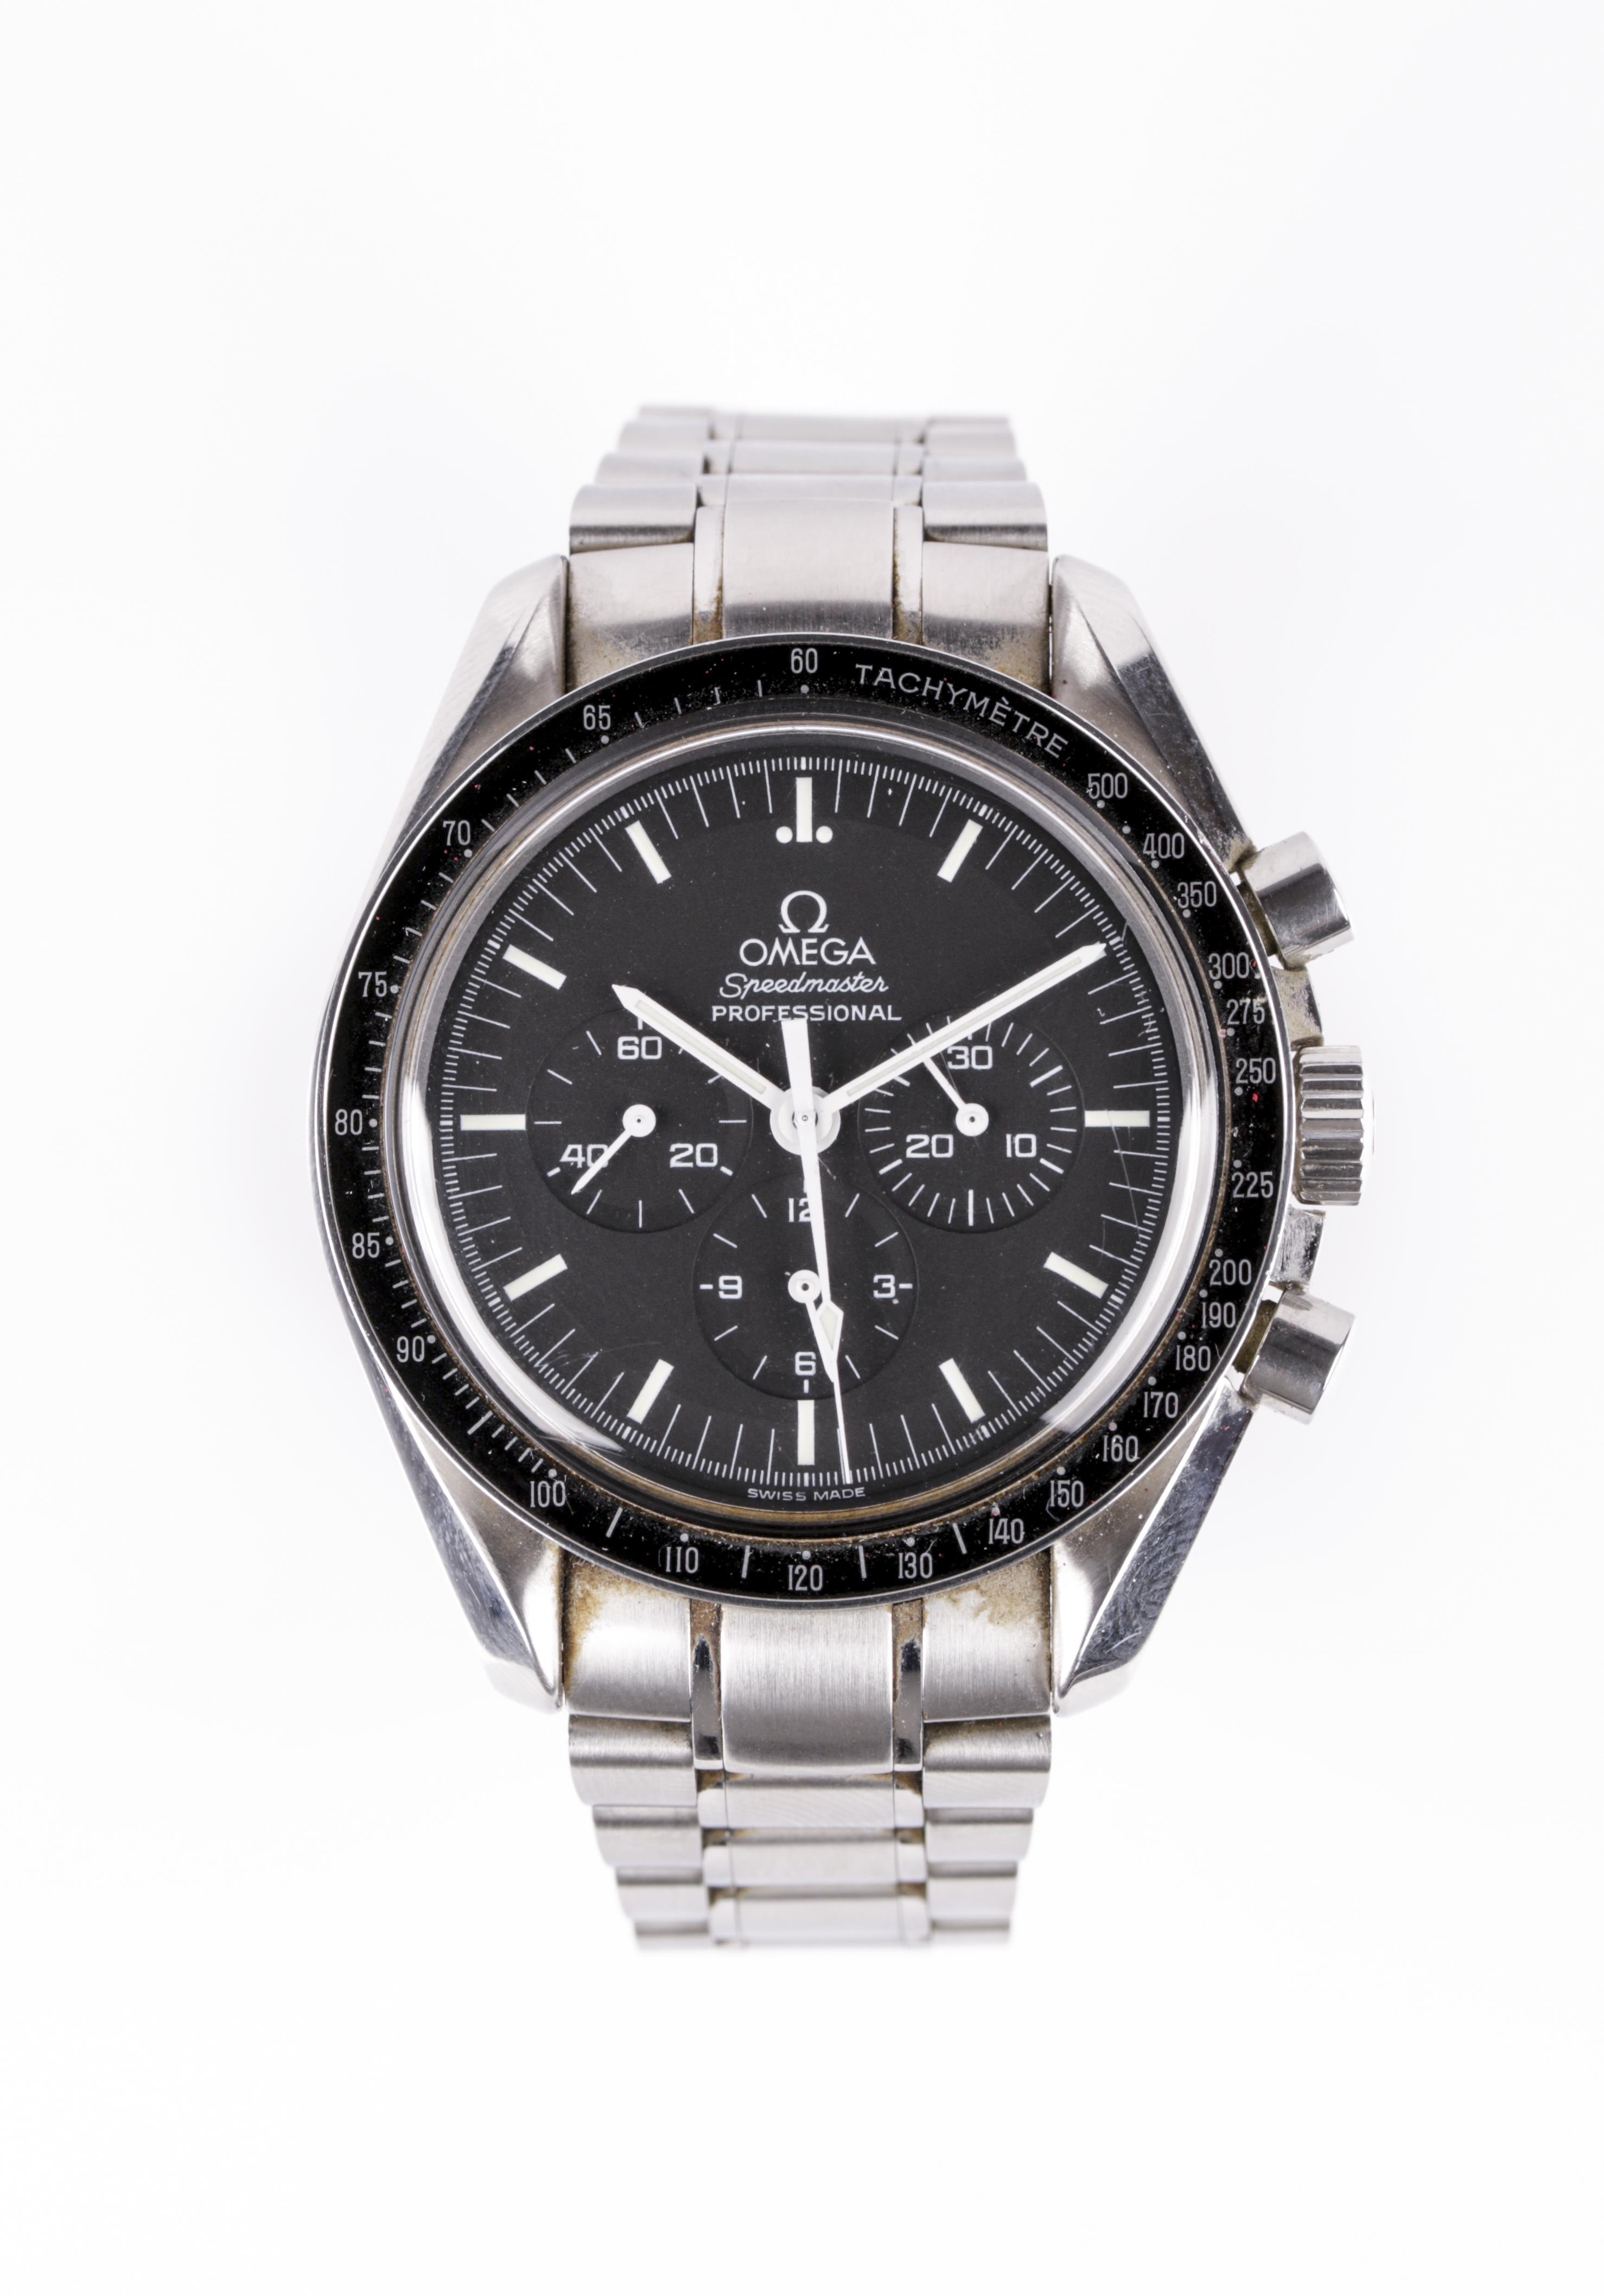 salvare 58a51 b7277 Omega Speedmaster Moonwatch - Spring auction 2018/05/16 ...